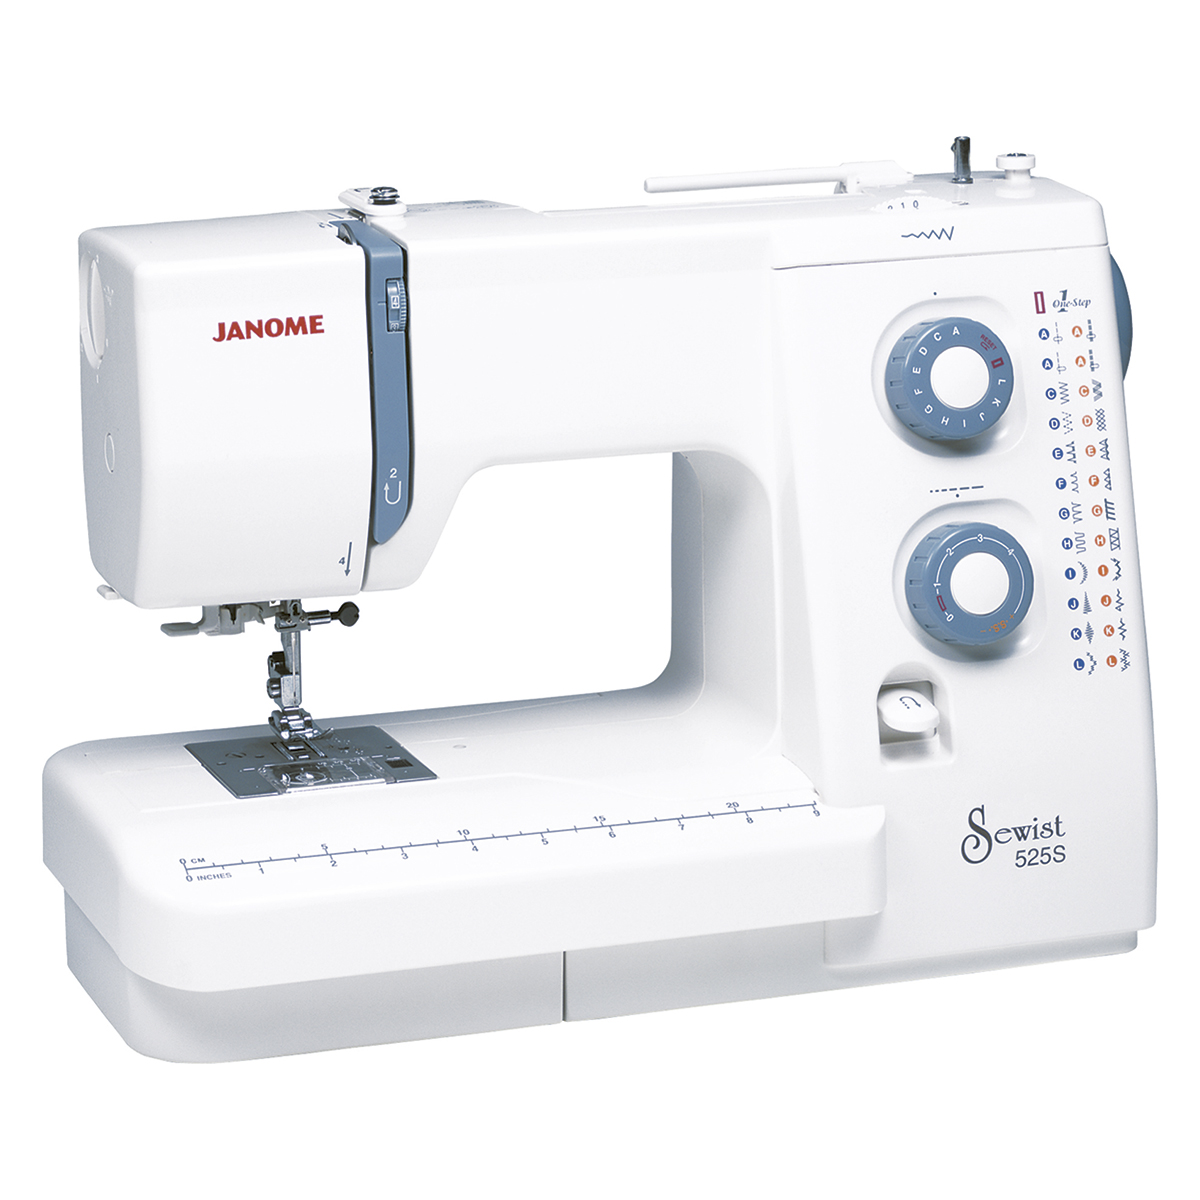 Janome Sewist 525s Sewing Machine Review